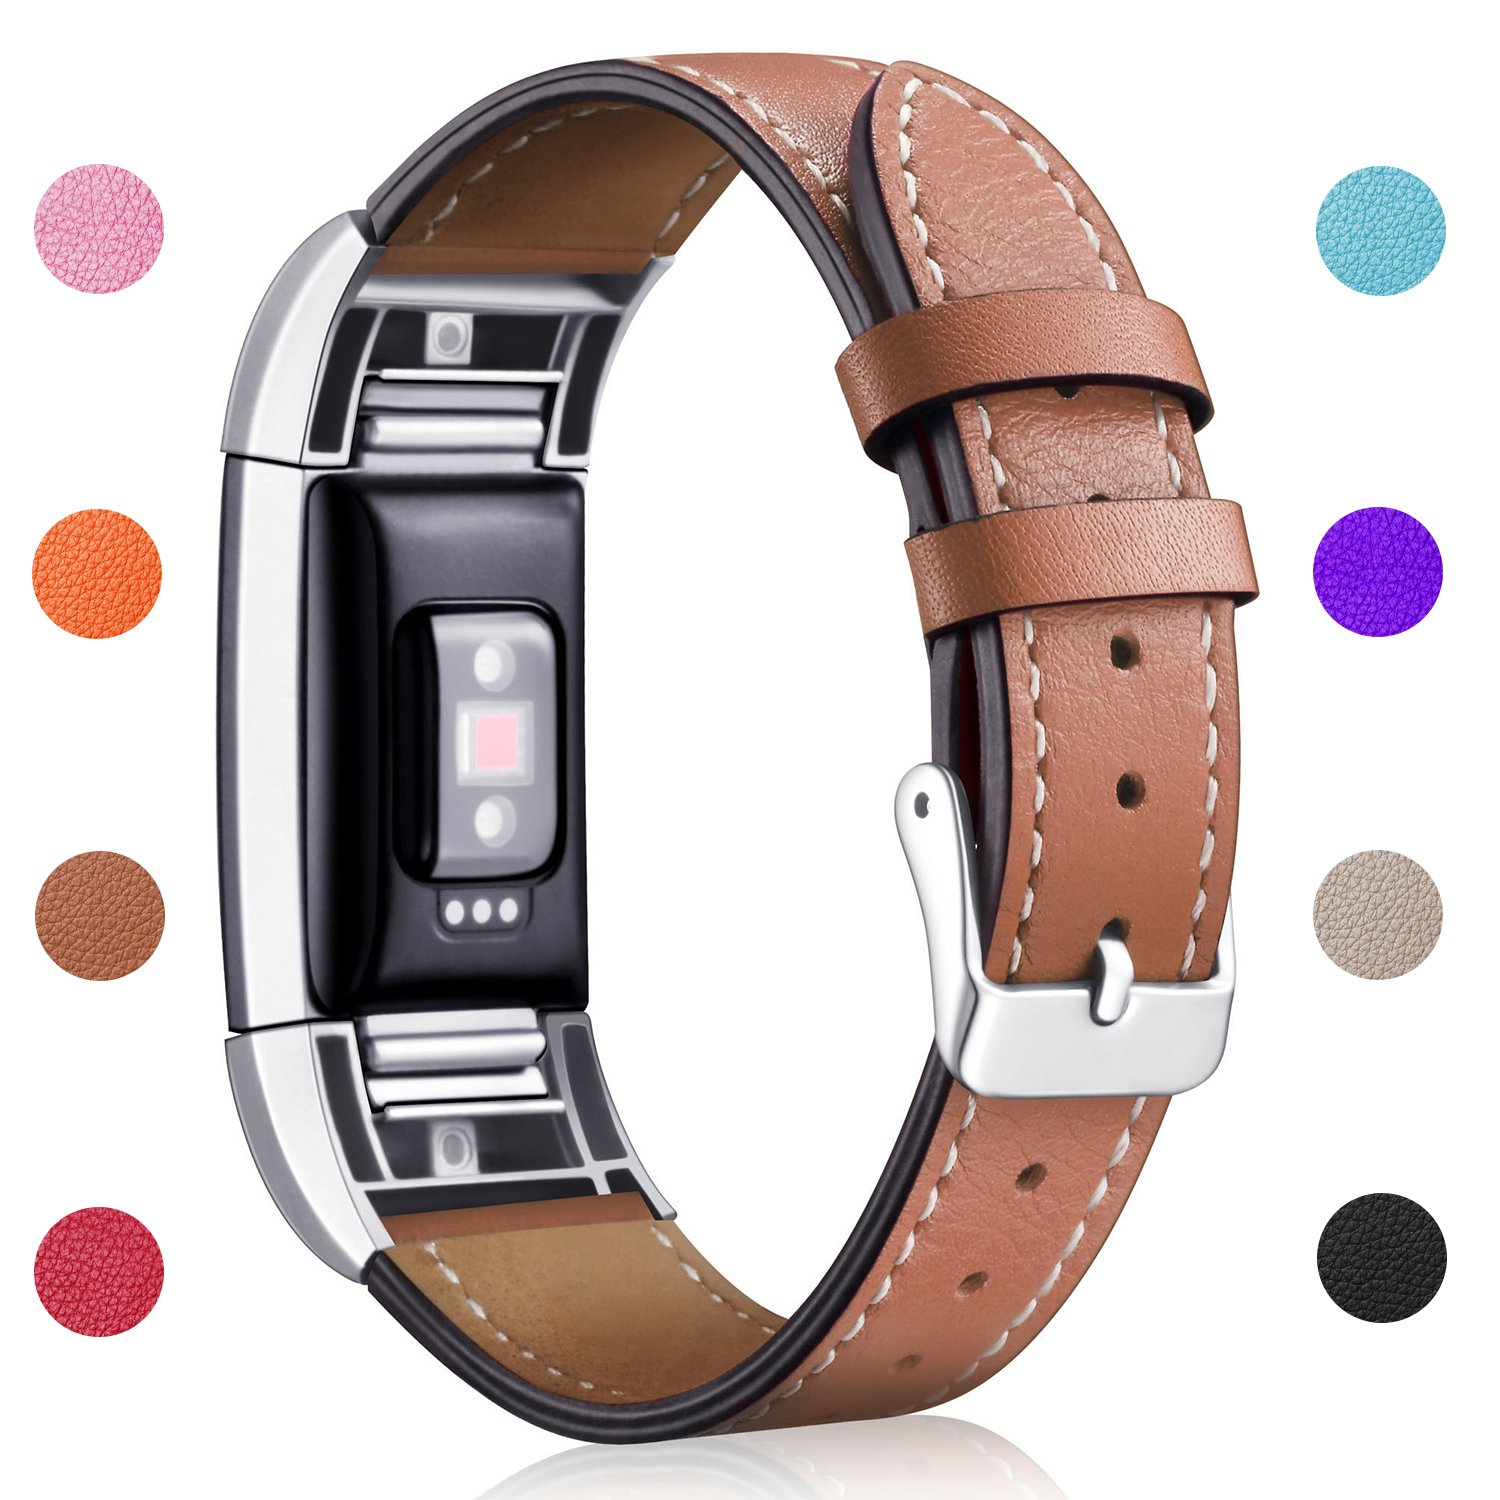 Hotodeal Band Compatible for Fitbit Charge 2 Replacement Bands, Classic Genuine Leather Wristband Metal Connectors, Fitness Strap Women Men Small Large by Hotodeal